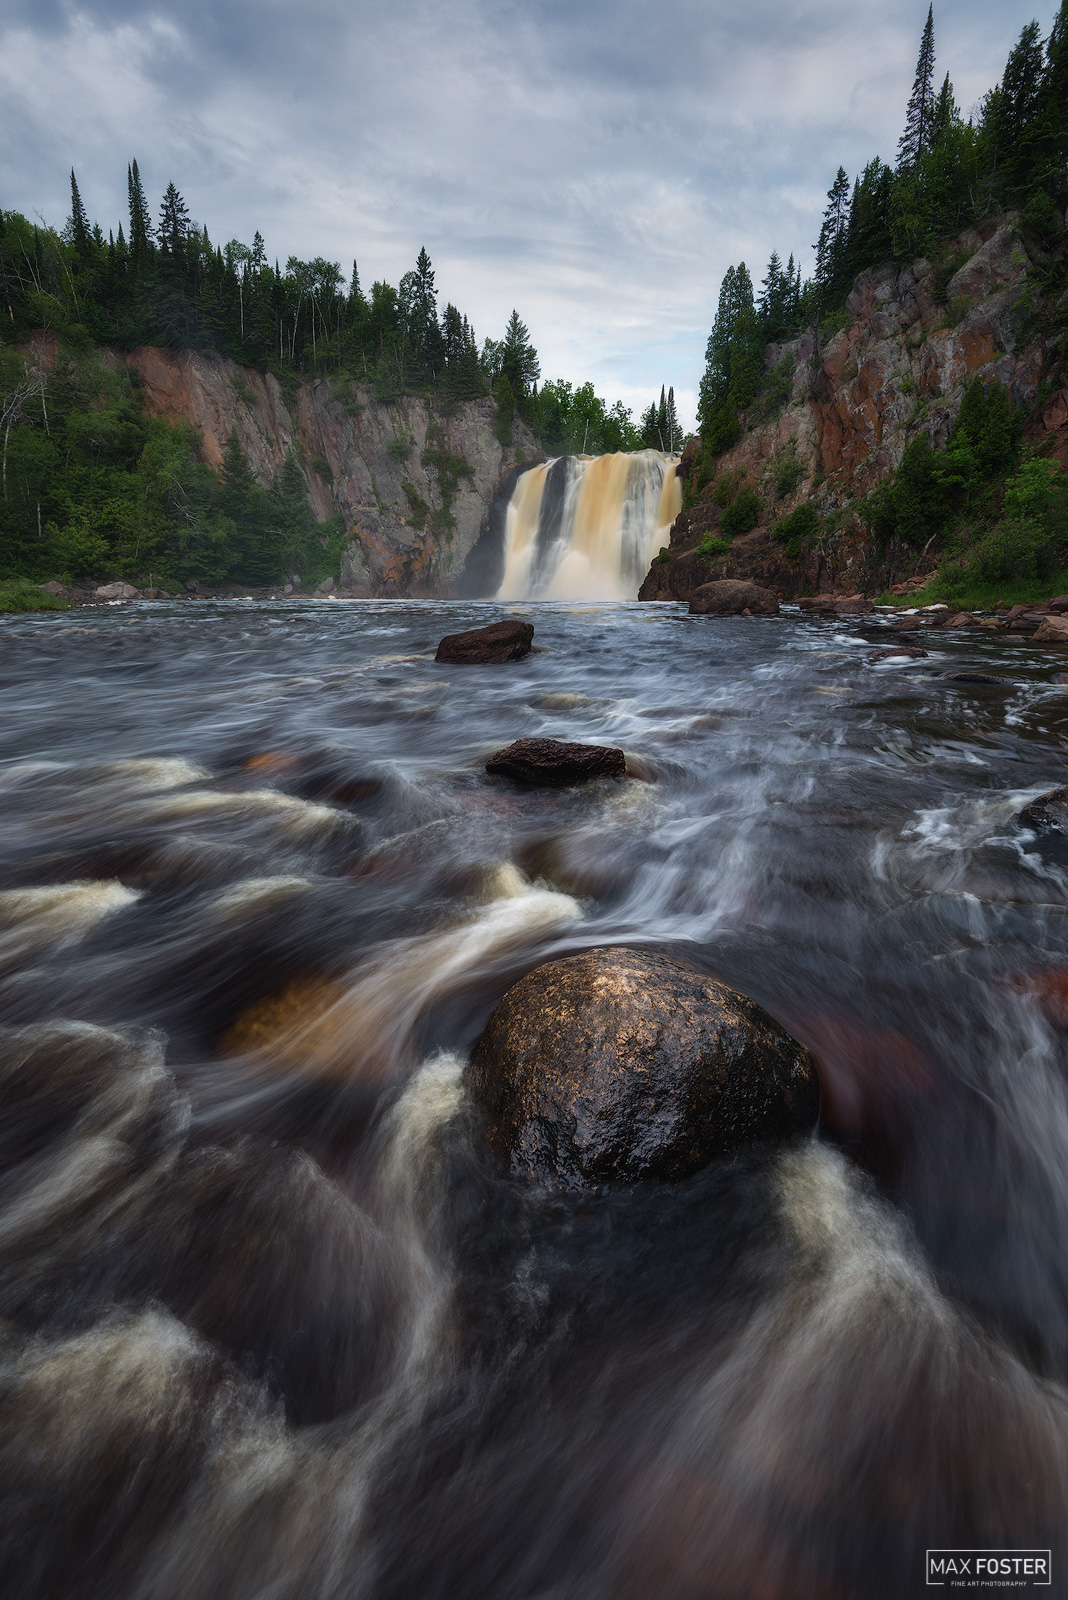 Minnesota, Tettegouche State Park, Baptism River, High Falls, Lake Superior, Duluth, Iron Works, North Shore, Superior Hiking Trail, , photo